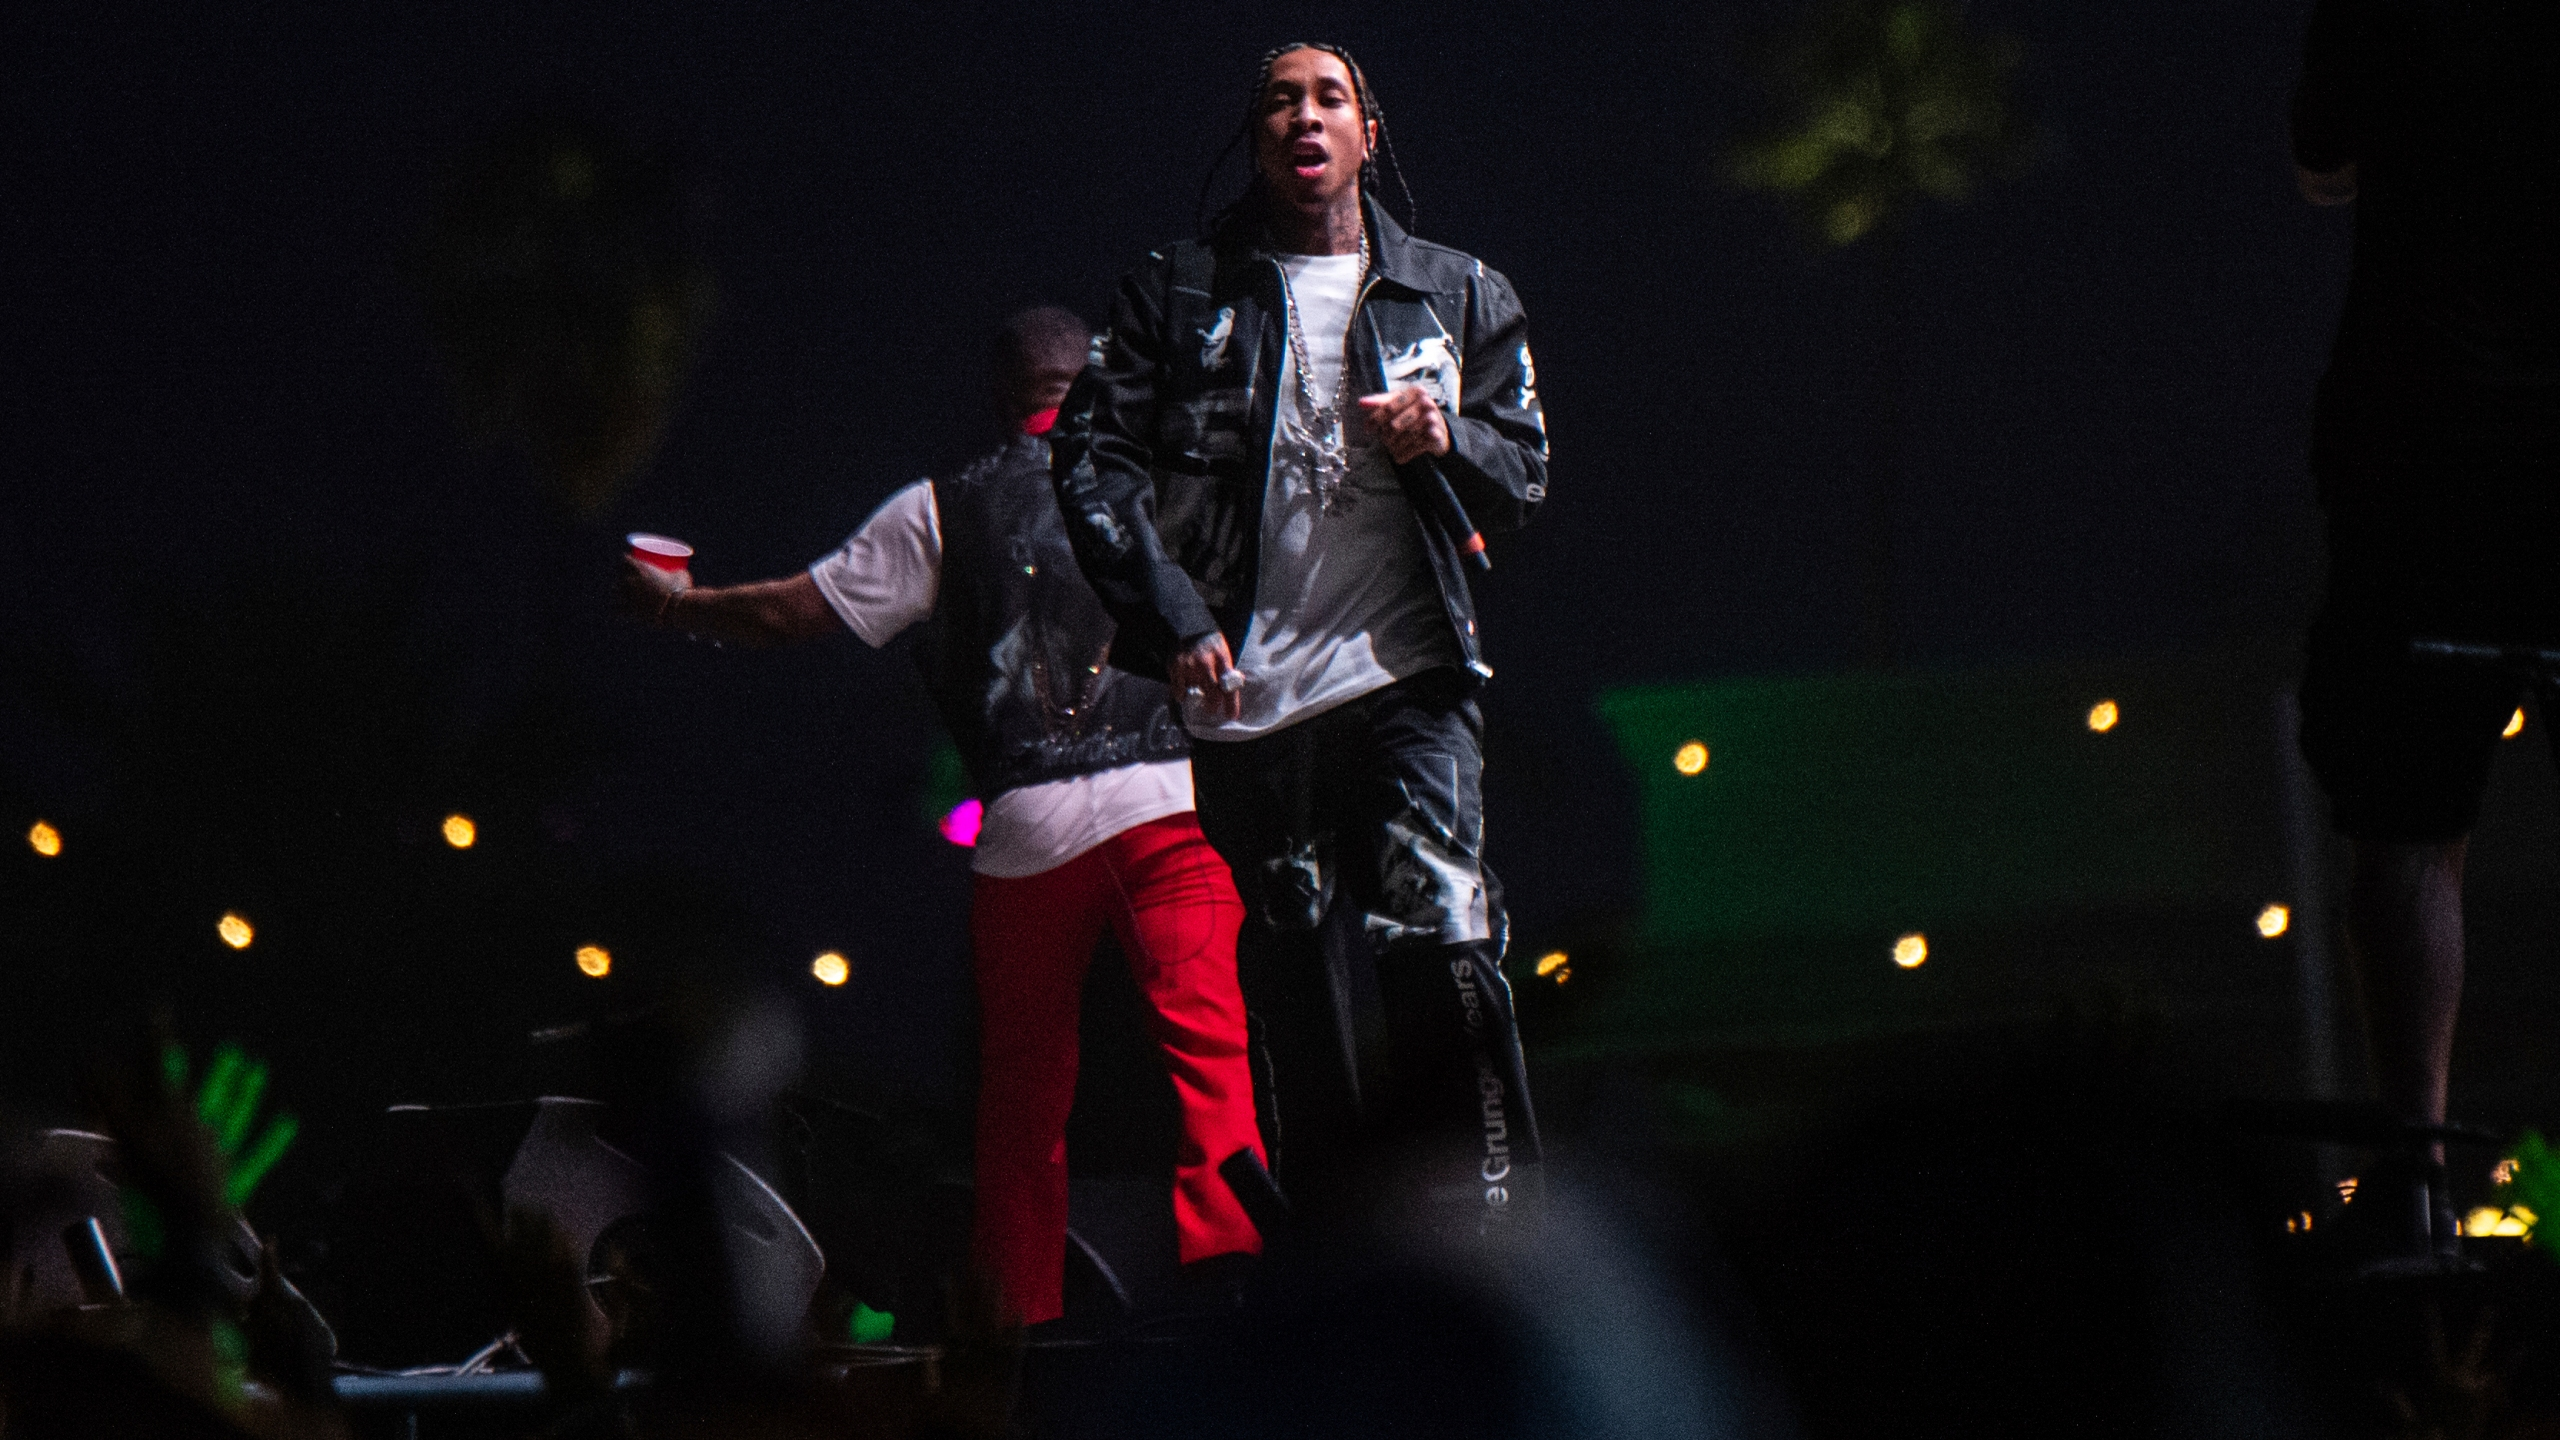 TYGA AT COACHELLA